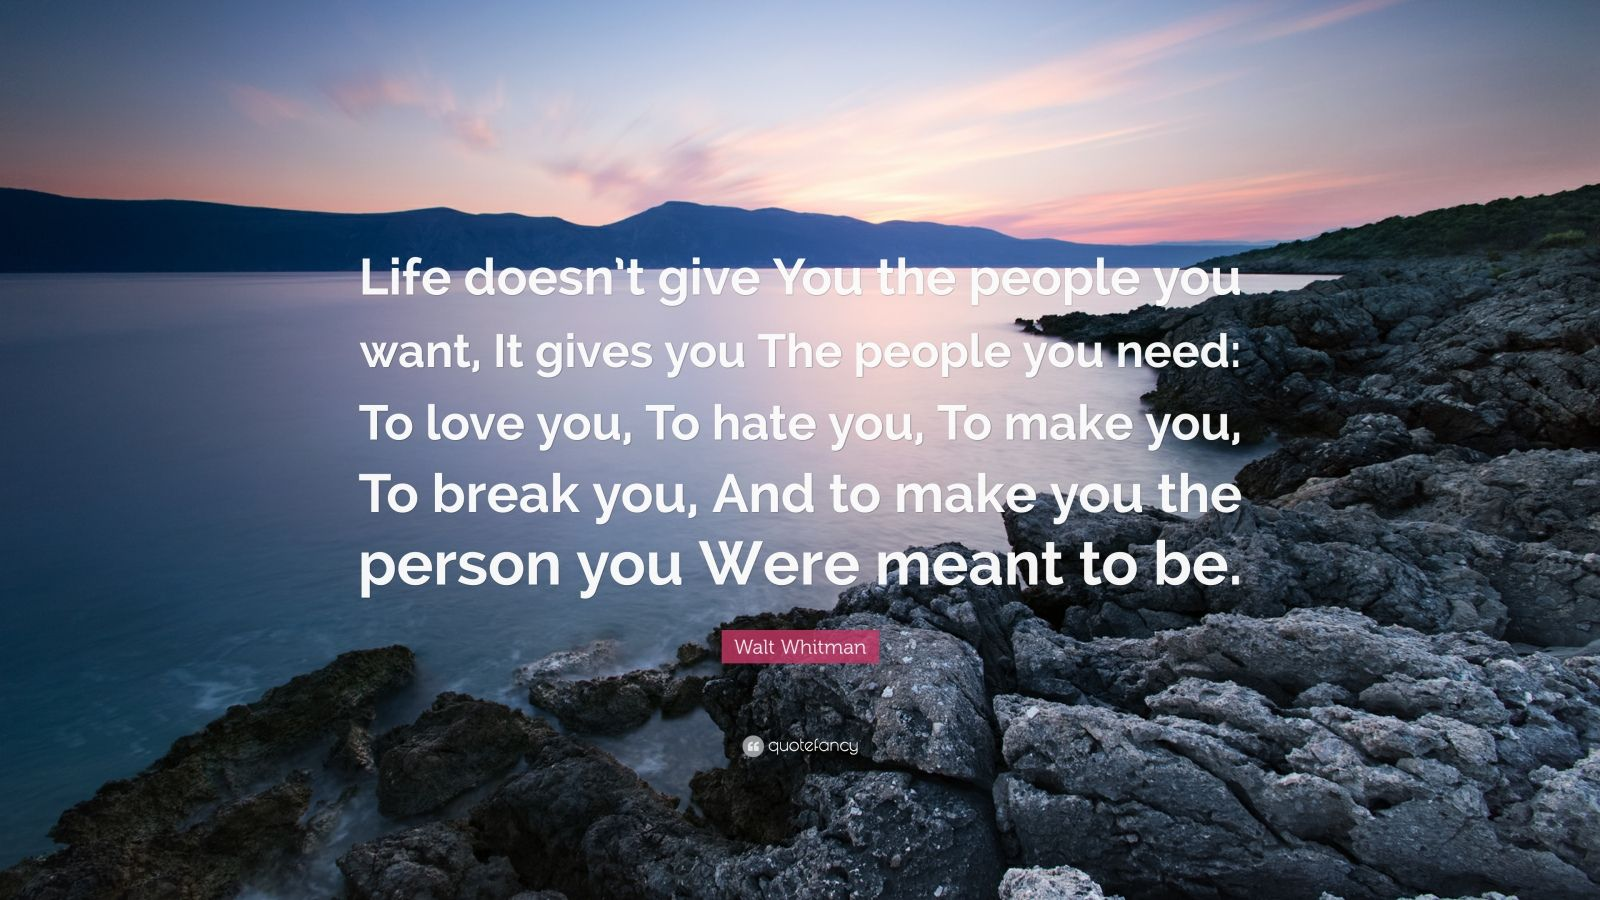 """Walt Whitman Quote: """"Life doesn't give You the people you want, It gives you The people you need: To love you, To hate you, To make you, To break you, And to make you the person you Were meant to be."""""""